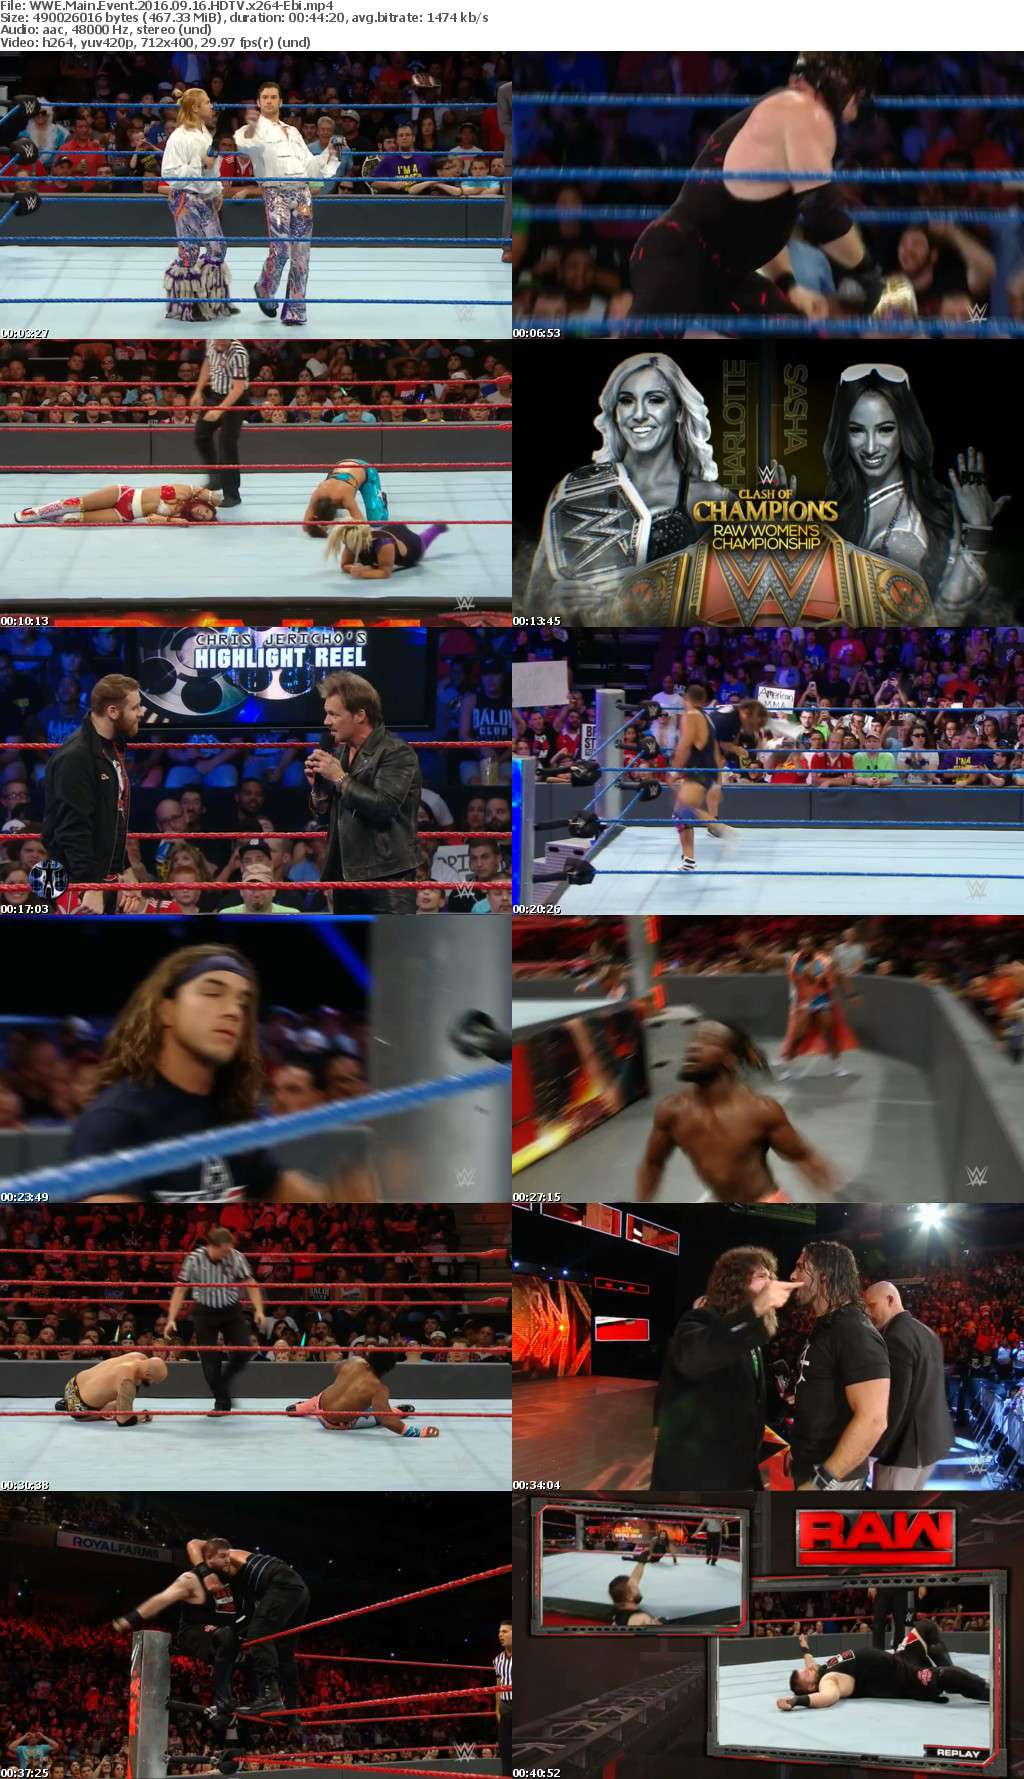 WWE Main Event 2016 09 16 HDTV x264-Ebi